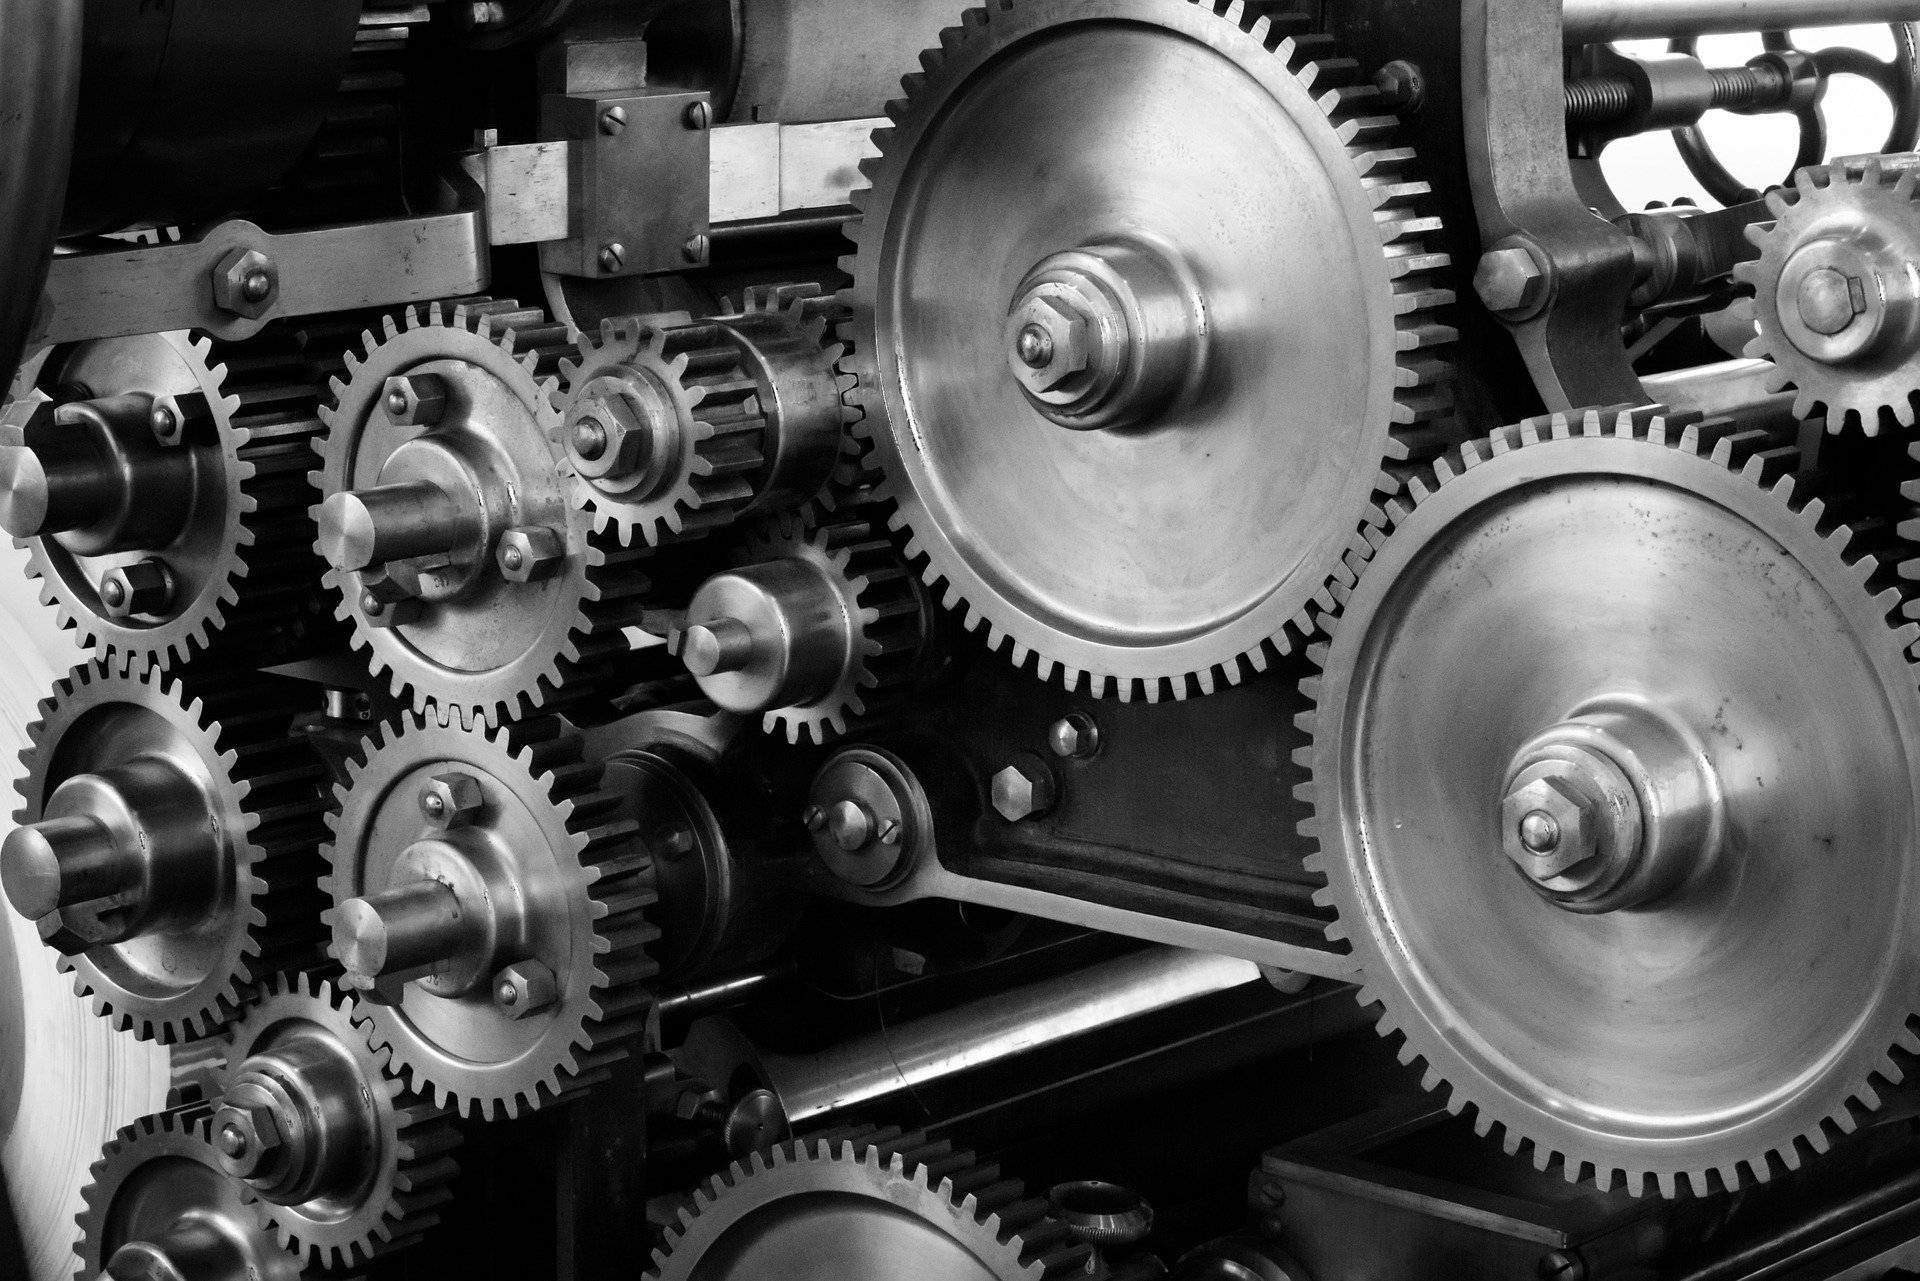 gears being monitored within a machine with preventative maintenance